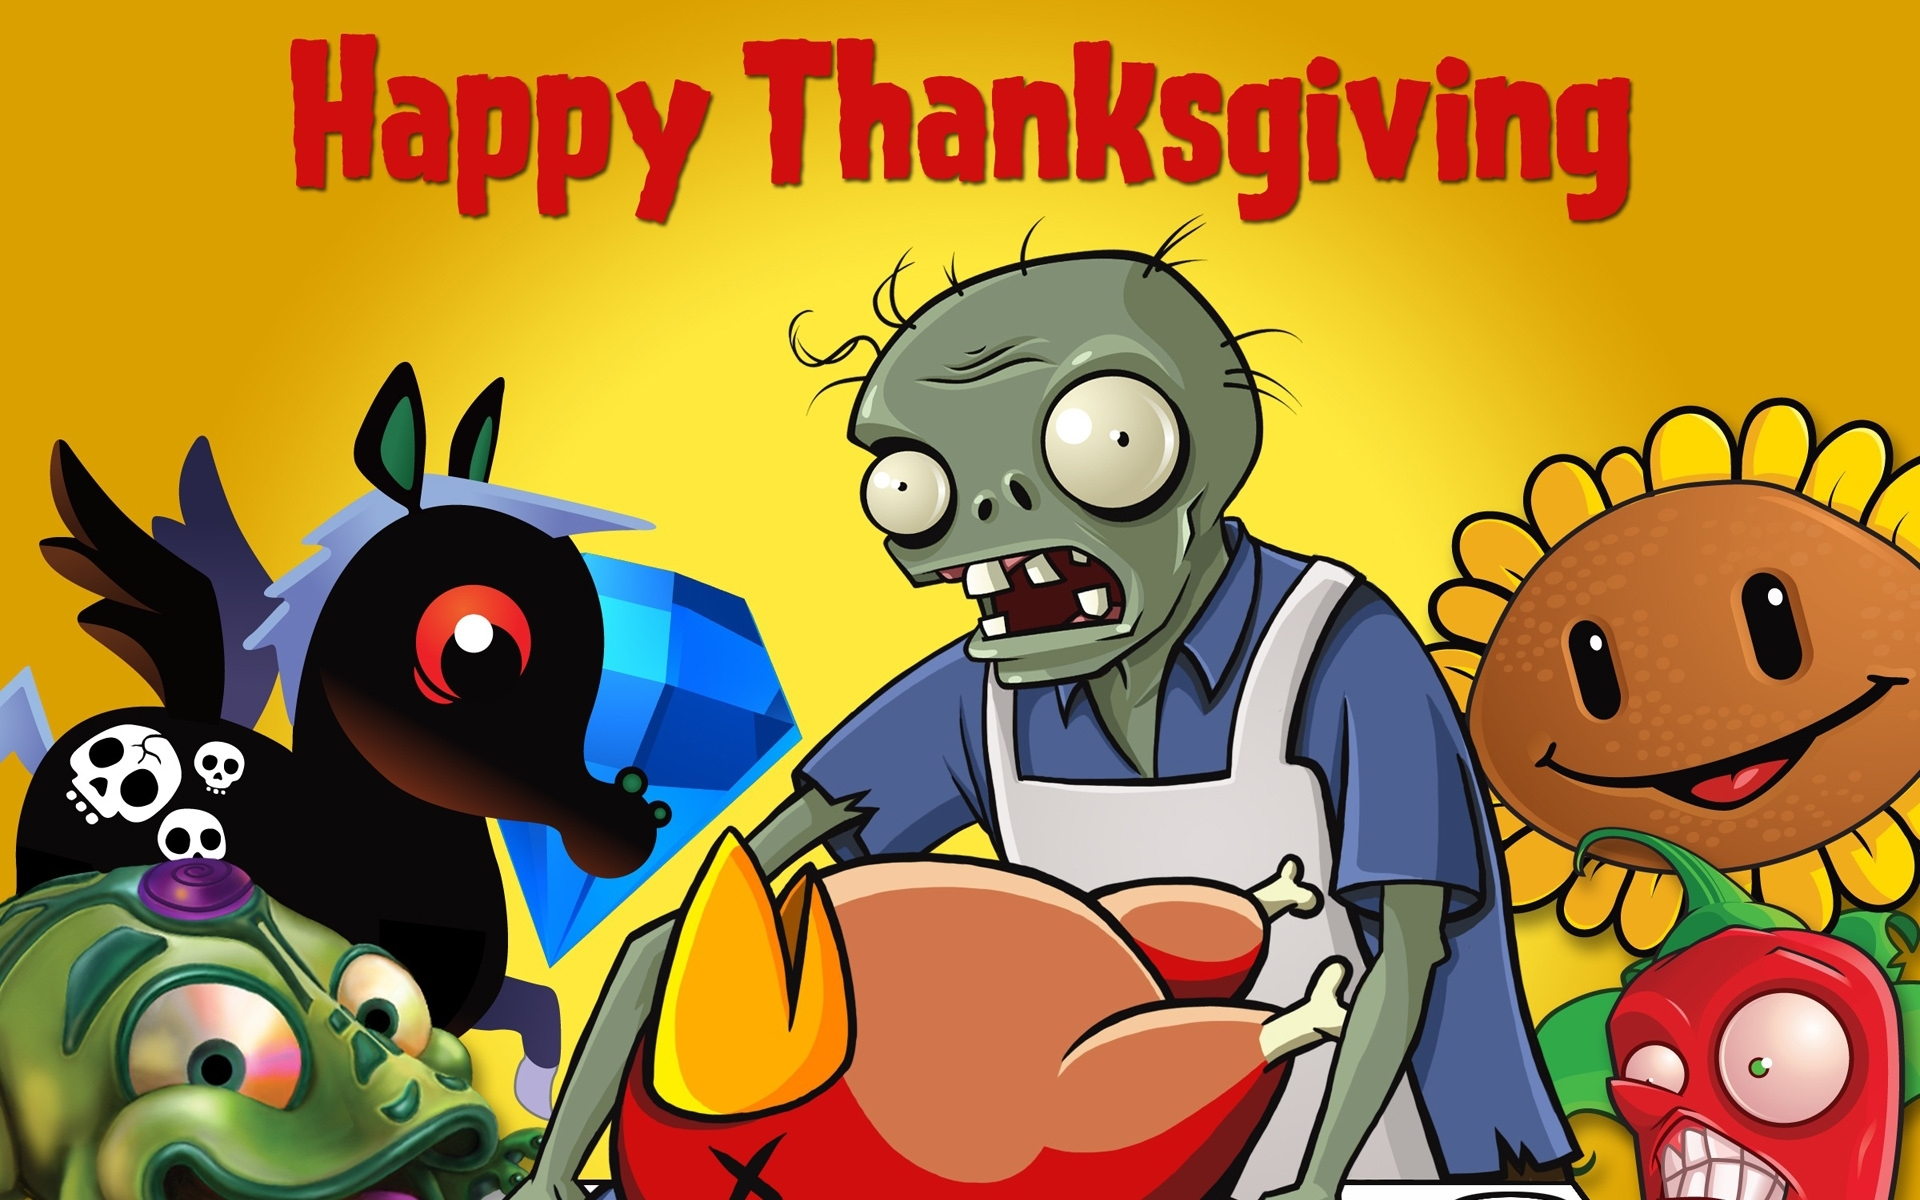 Minions Hd Wallpapers 1080p Funny Thanks Giving Day Hd Free Wallpaper